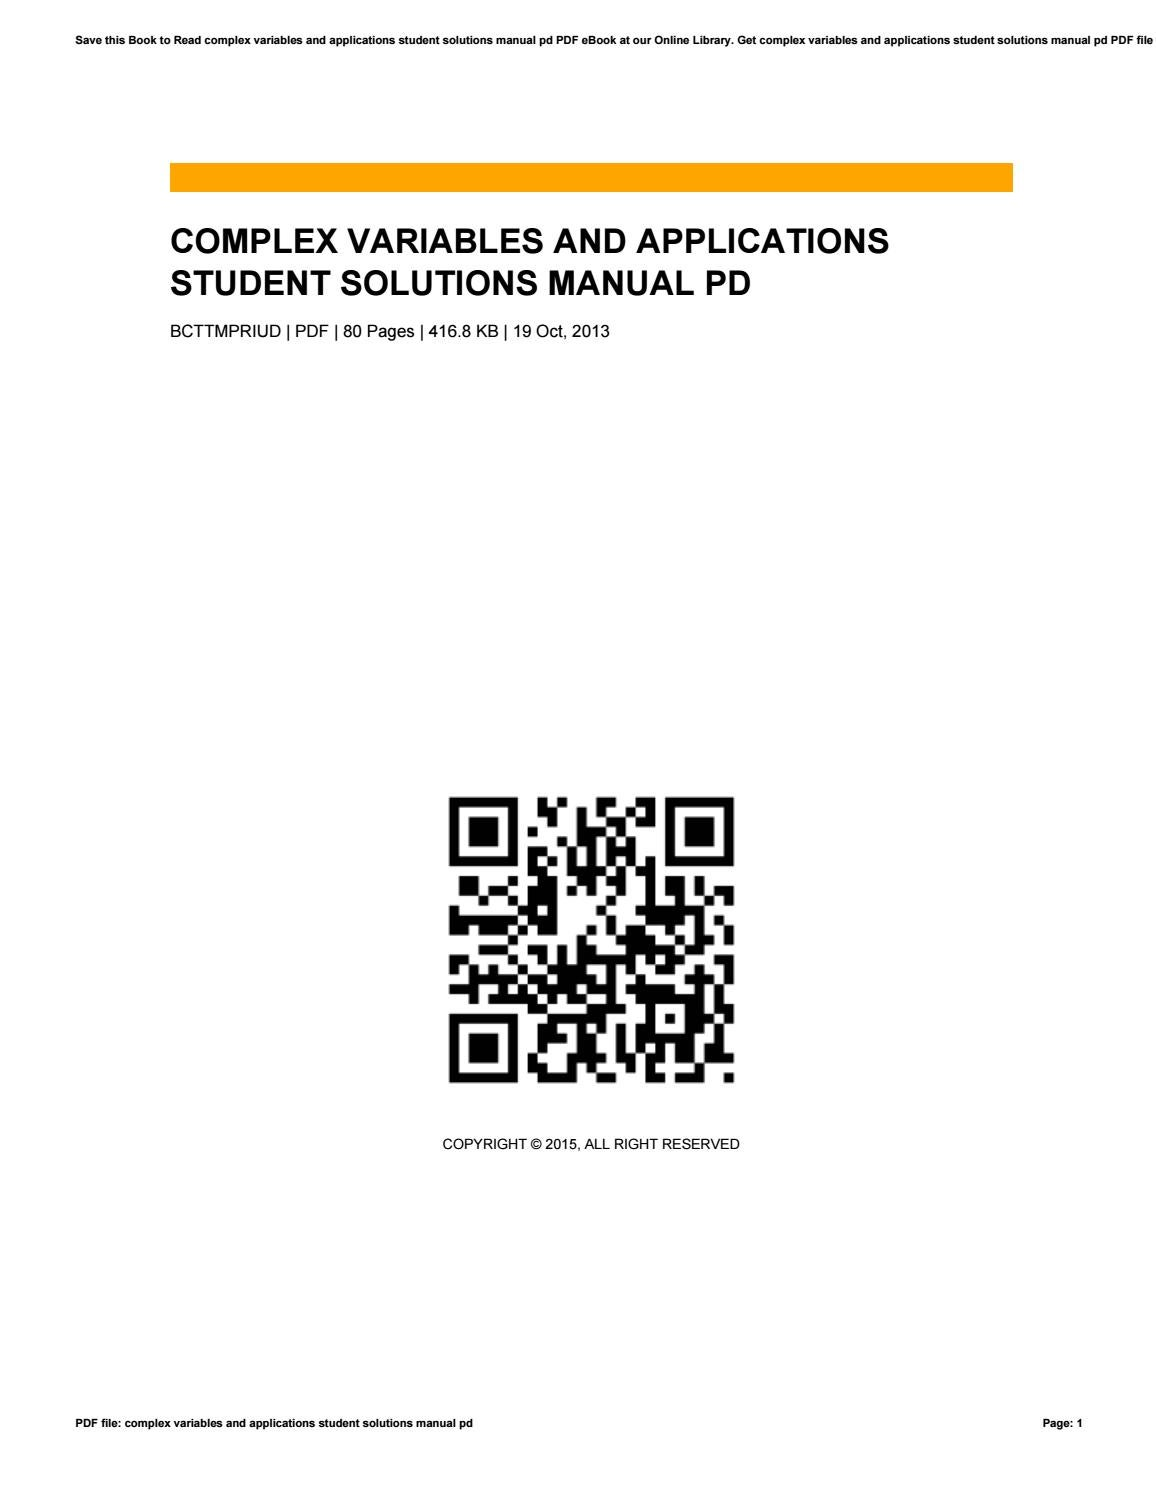 Complex variables and applications student solutions manual pd by  VictorStreeter1614 - issuu